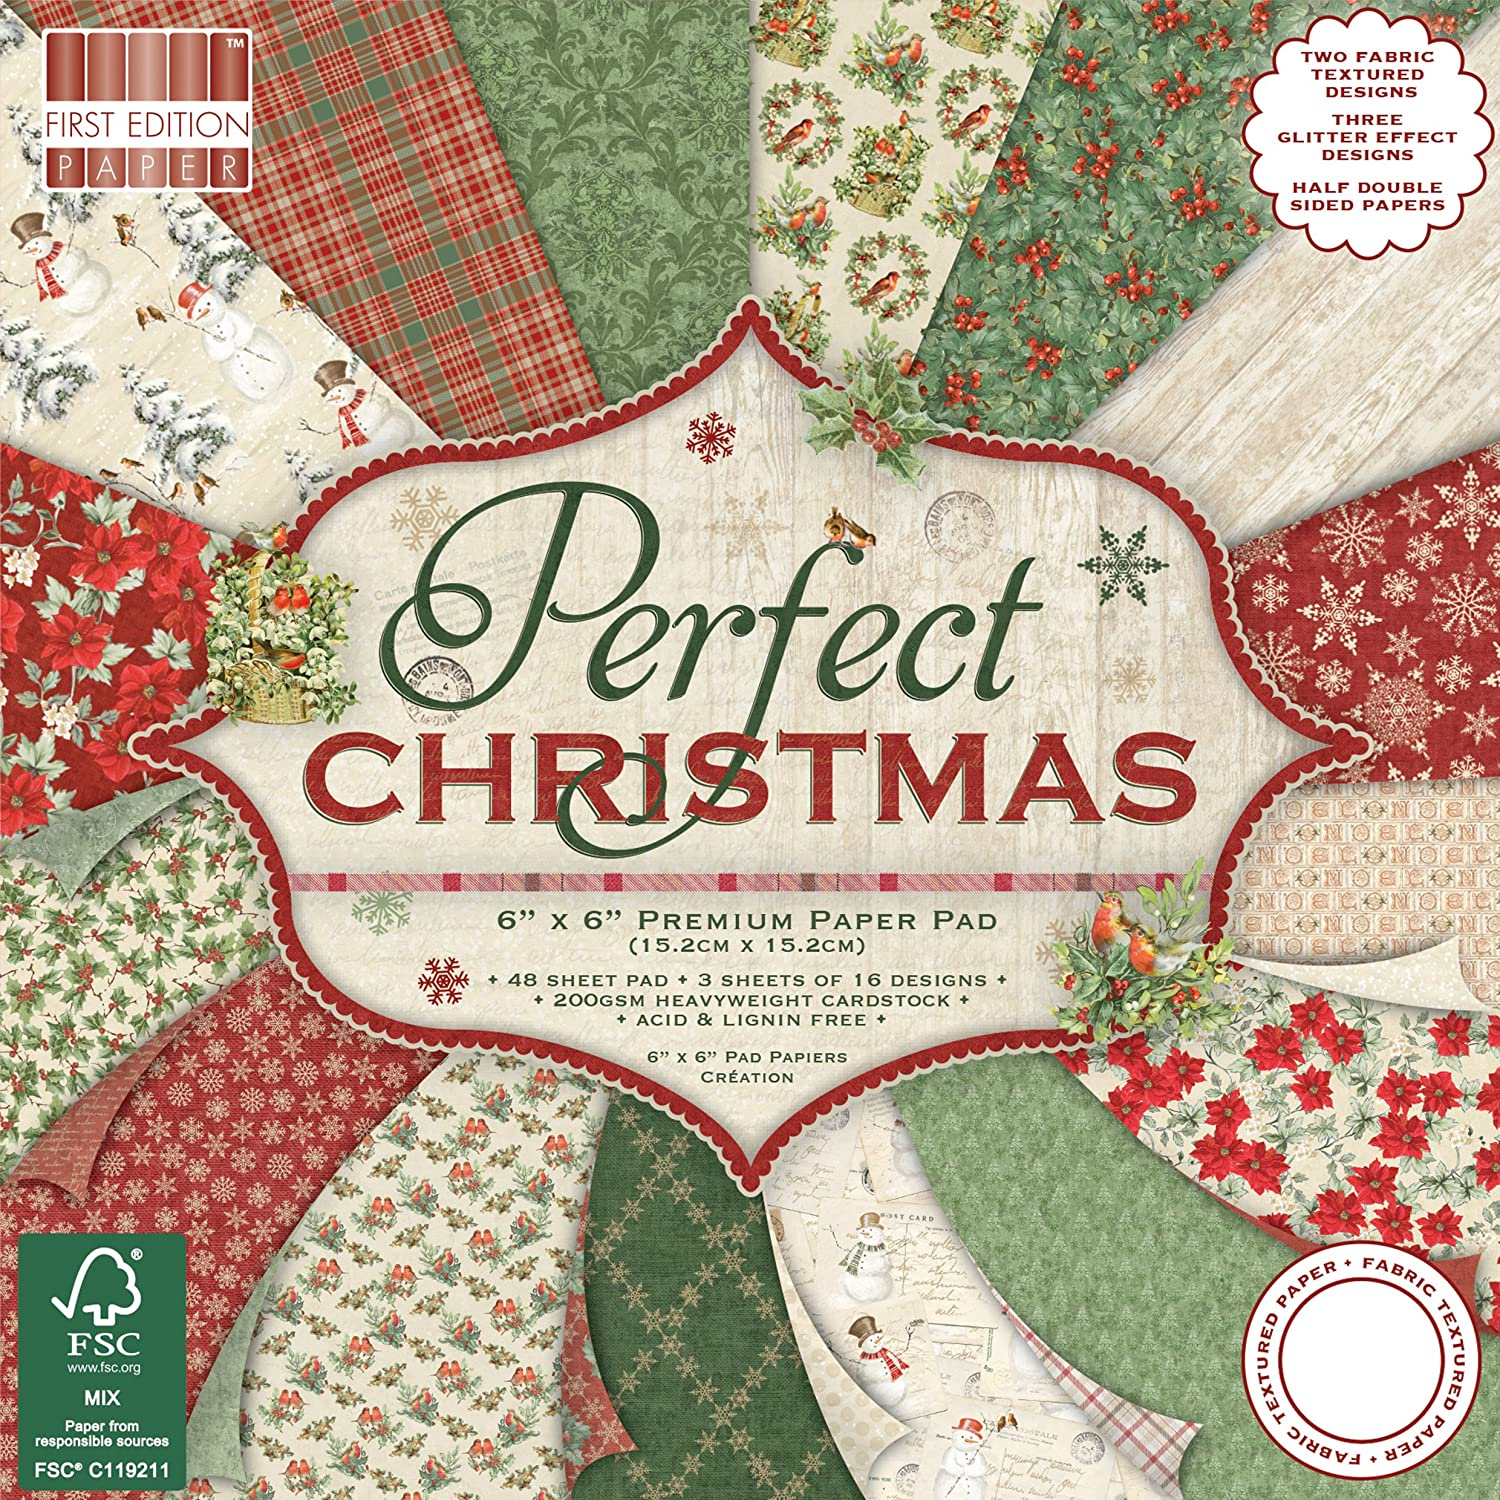 First Edition Christmas 2018 - Perfect Christmas Premium Paper Pad 6